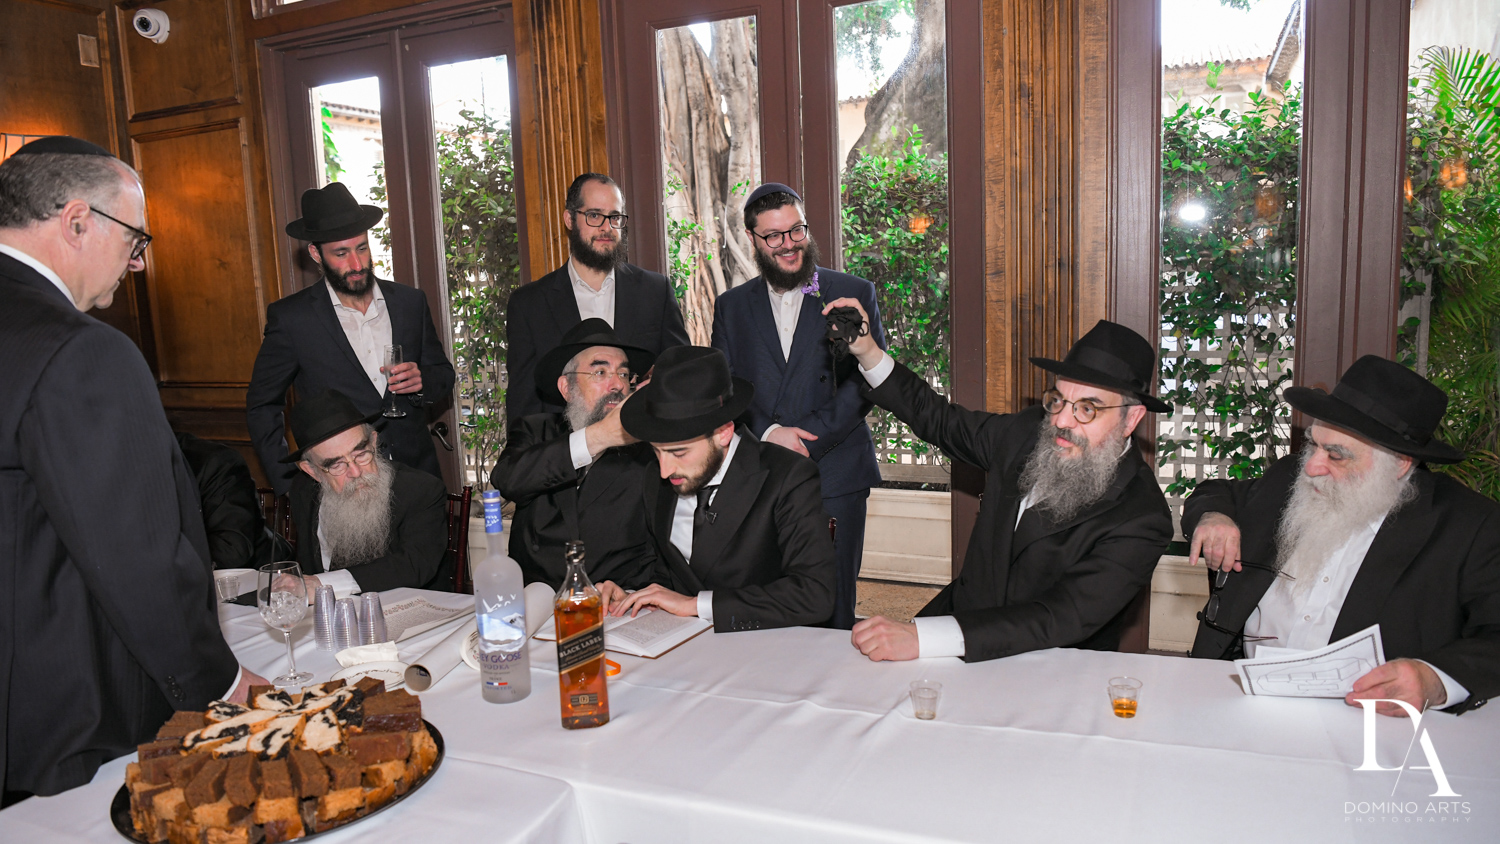 Tish tradition at Hasidic Jewish Wedding at The Addison in Boca Raton by Domino Arts Photography